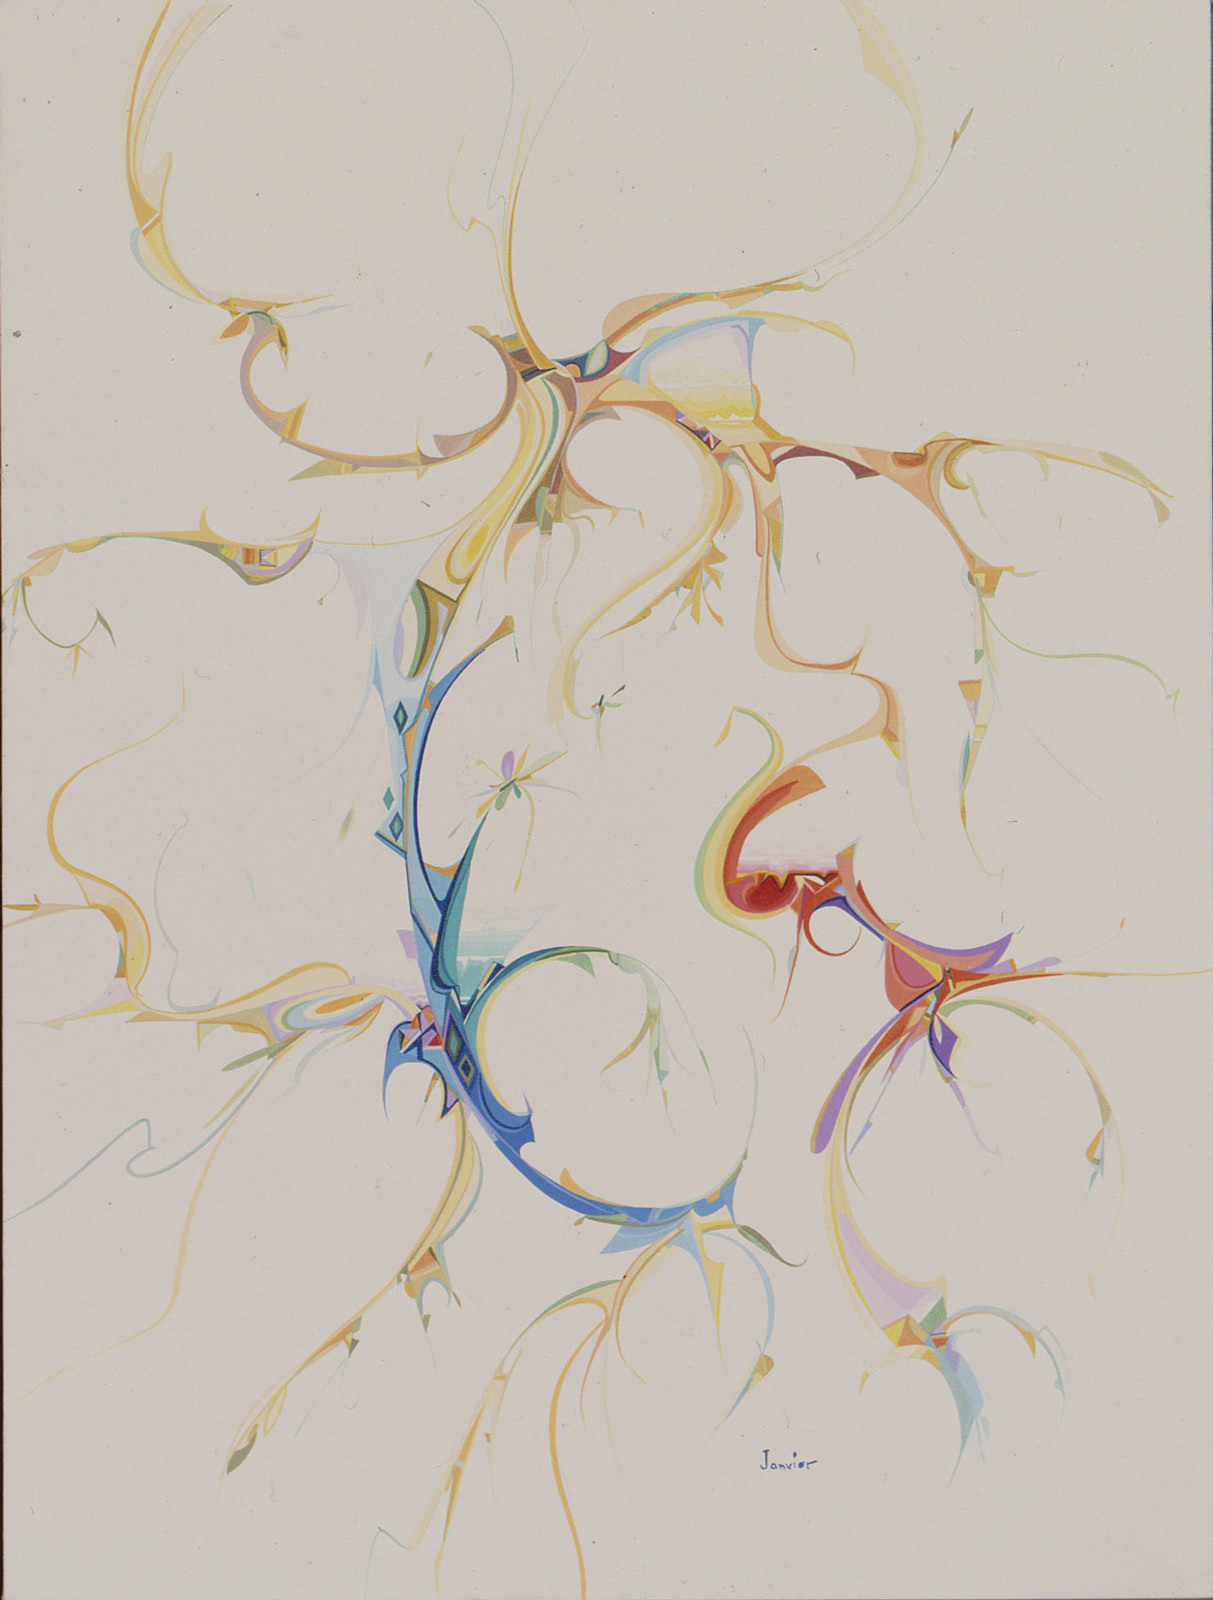 Other Worlds (1984) Alex Janvier (1935 - ) Acrylic on canvas Collection: Aboriginal Affairs and Northern Development Canada